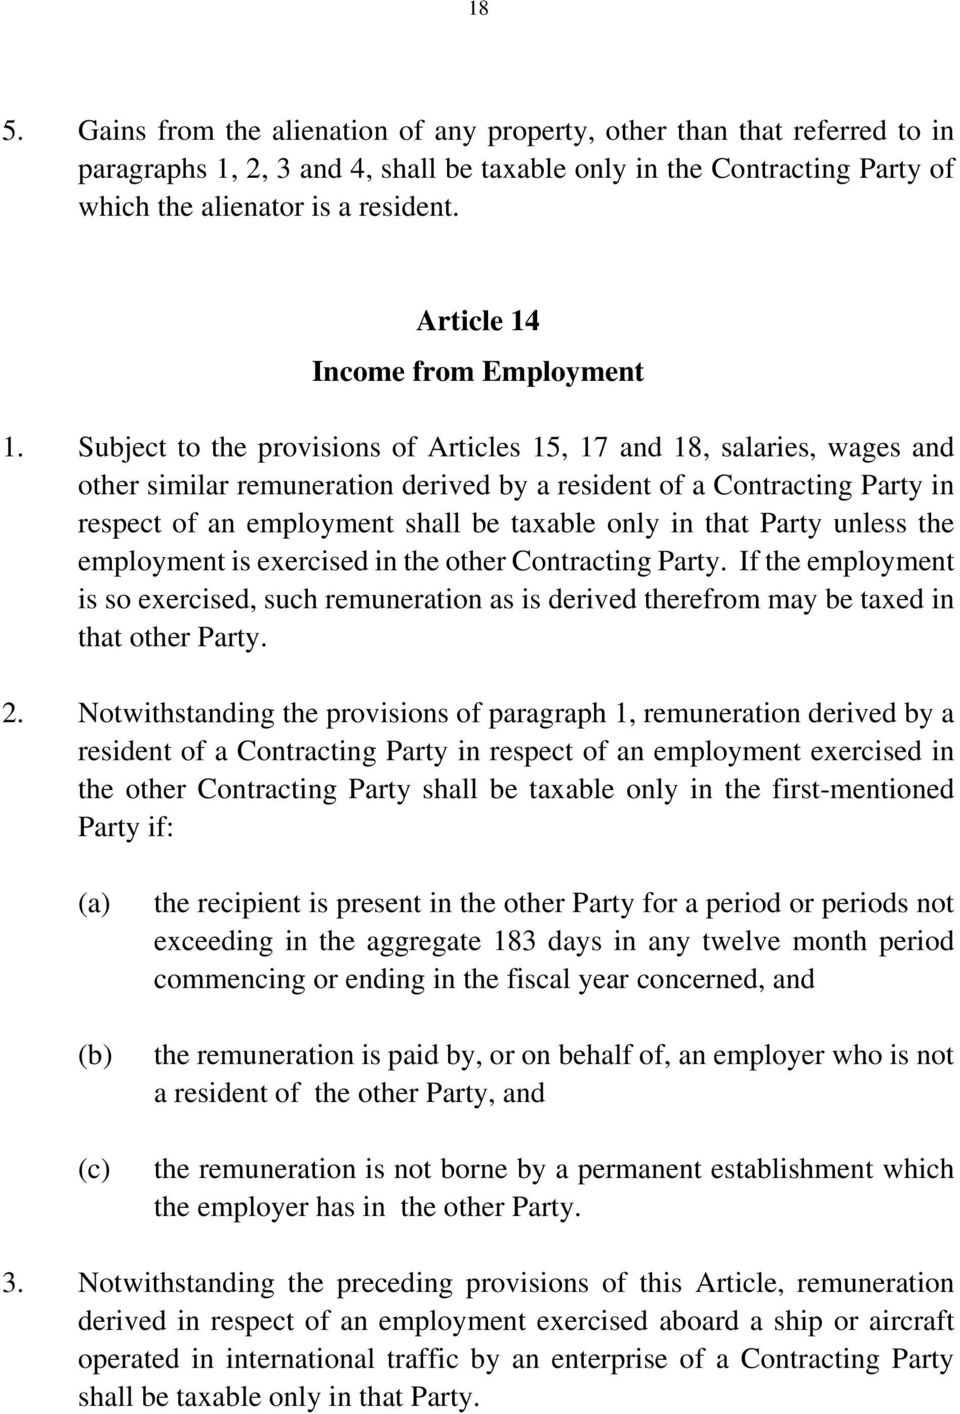 Subject to the provisions of Articles 15, 17 and 18, salaries, wages and other similar remuneration derived by a resident of a Contracting Party in respect of an employment shall be taxable only in